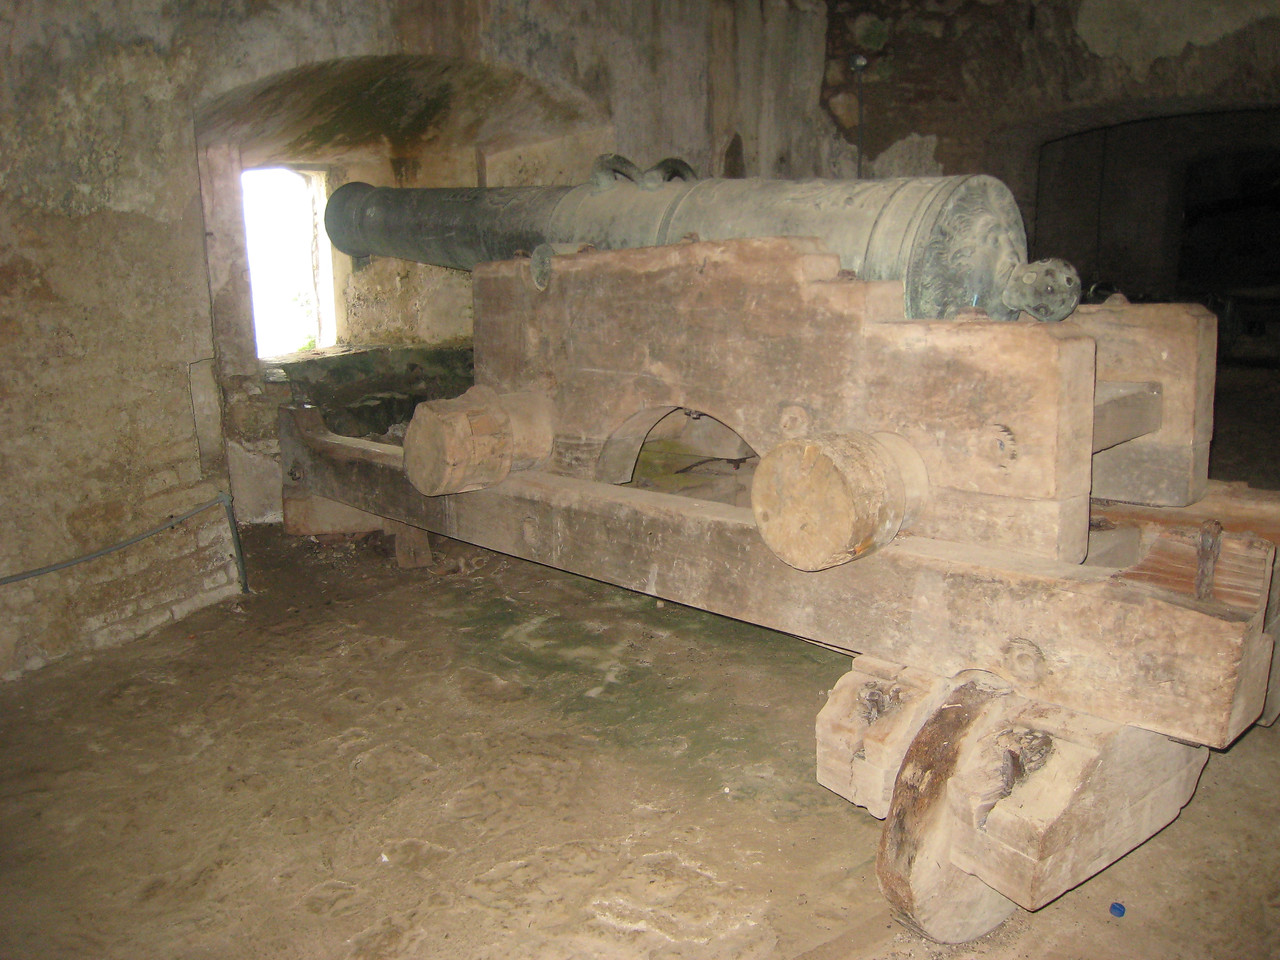 An original cannon, pointed to defend against the French to ensure Haiti maintained its independence